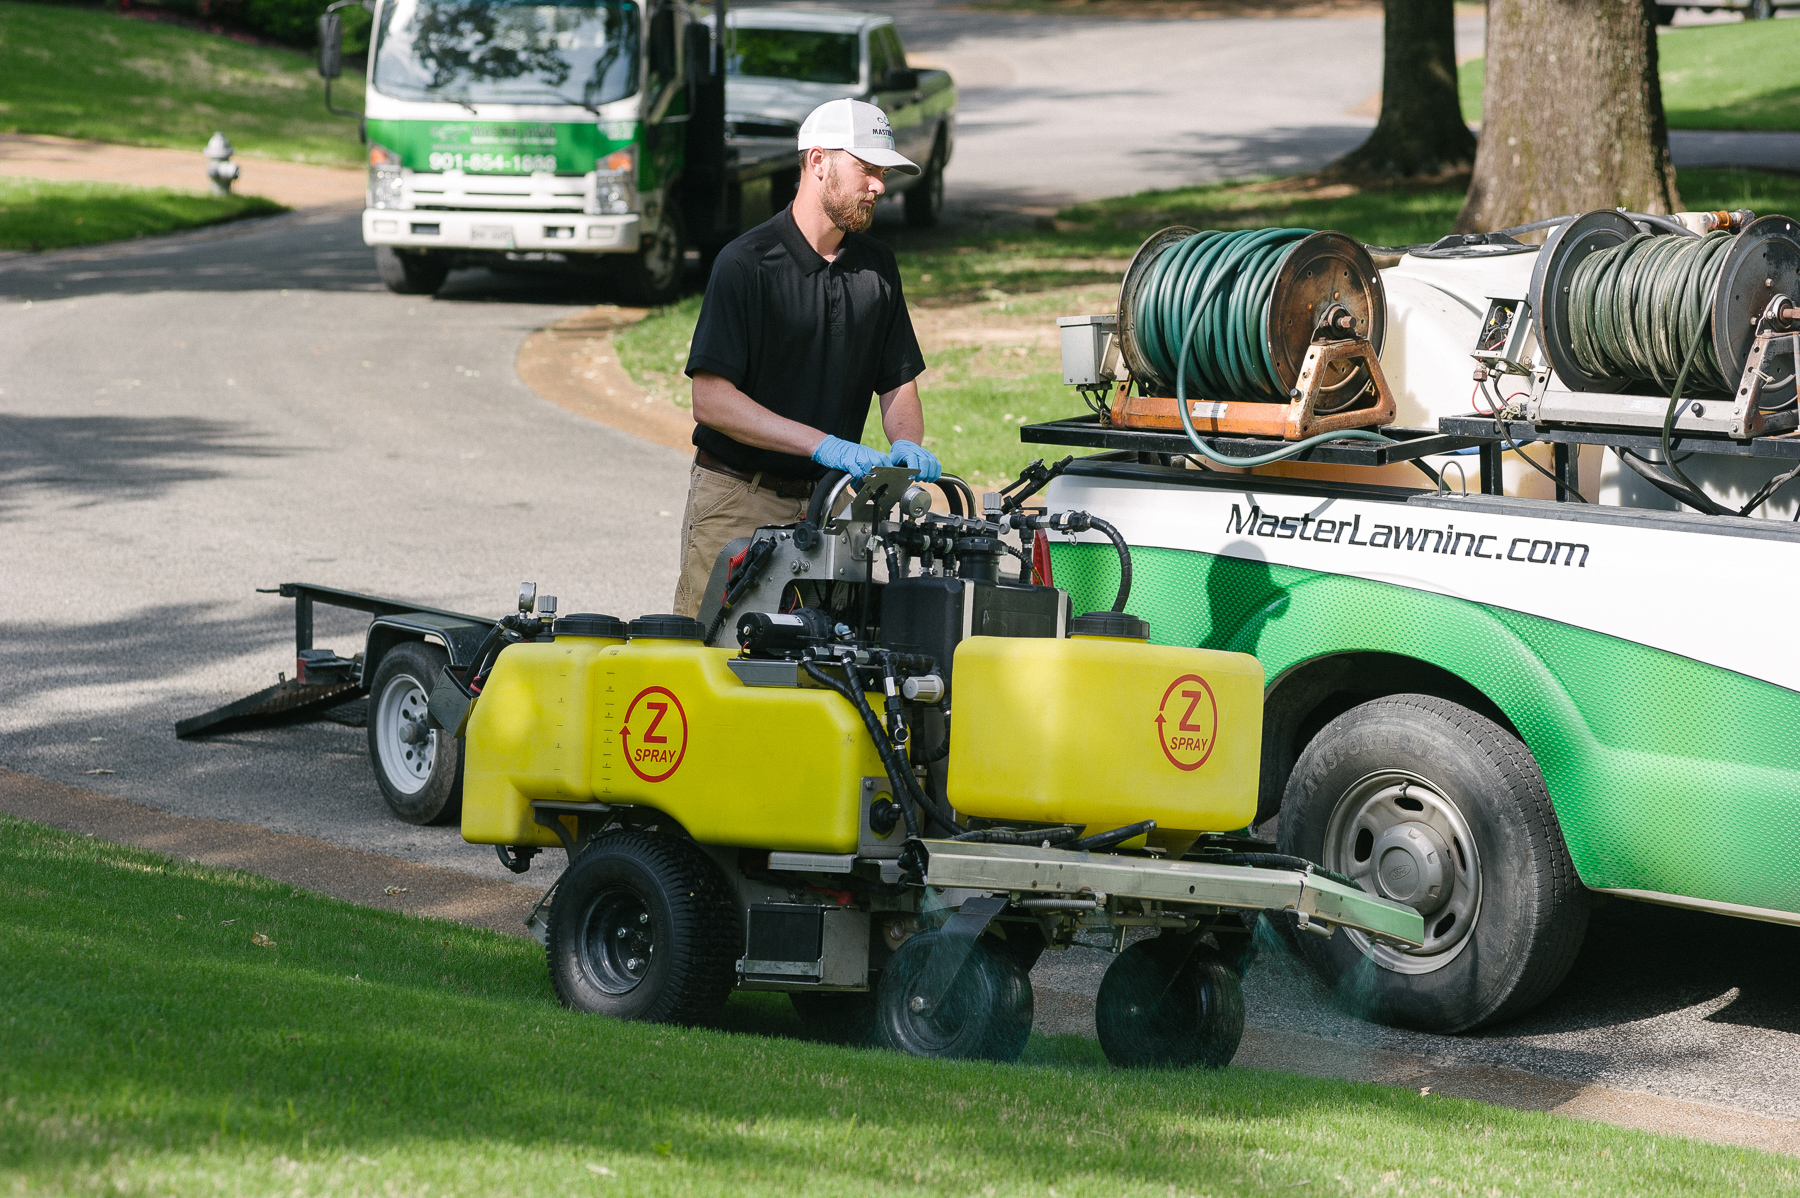 Master Lawn lawn care technician spraying lawn in Olive Branch, MS